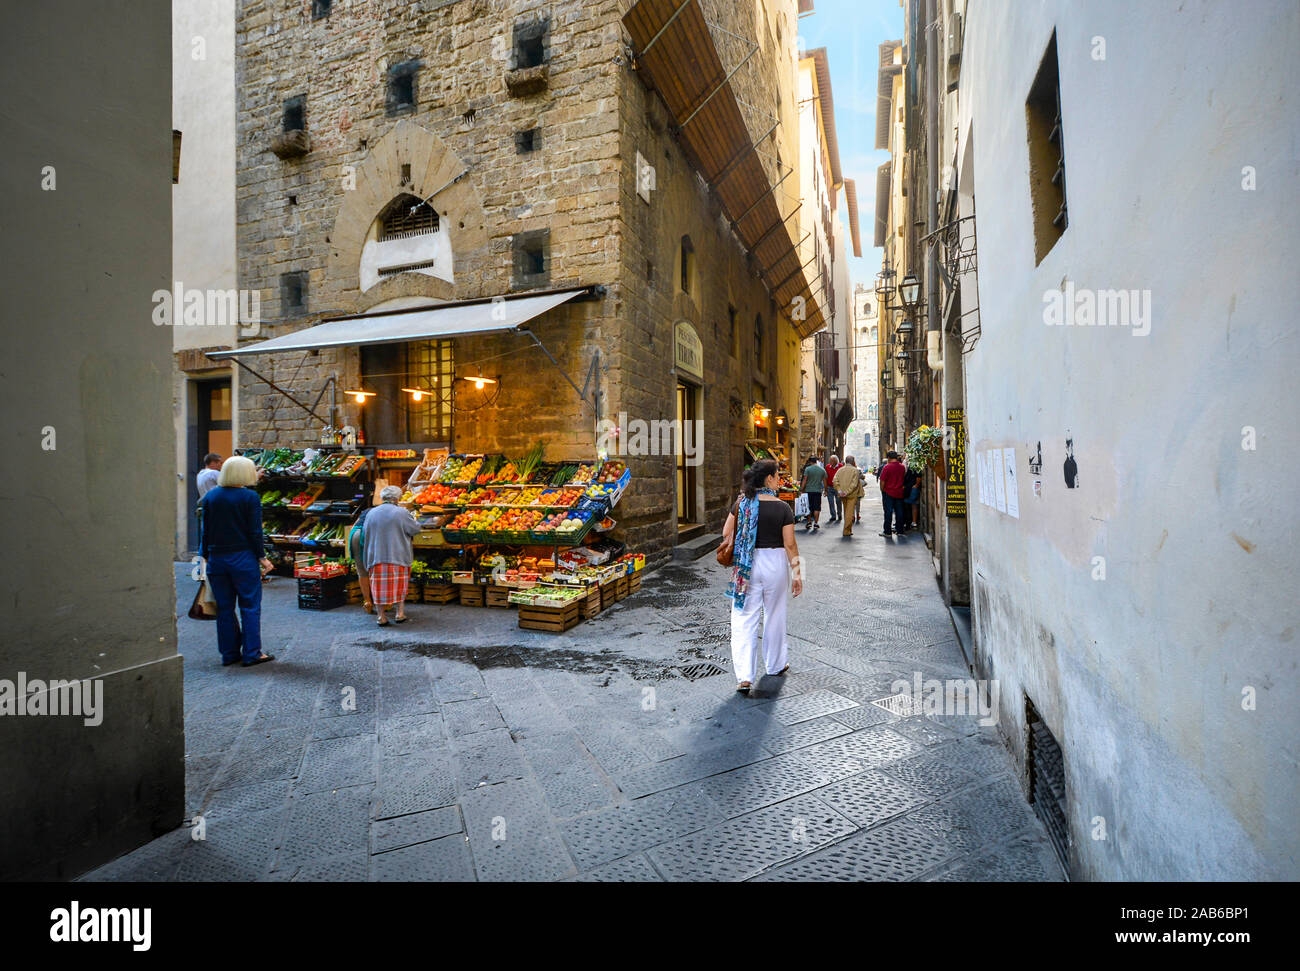 Italians pass by a fresh produce market near a narrow alley away from the main tourist areas in Florence, Italy Stock Photo